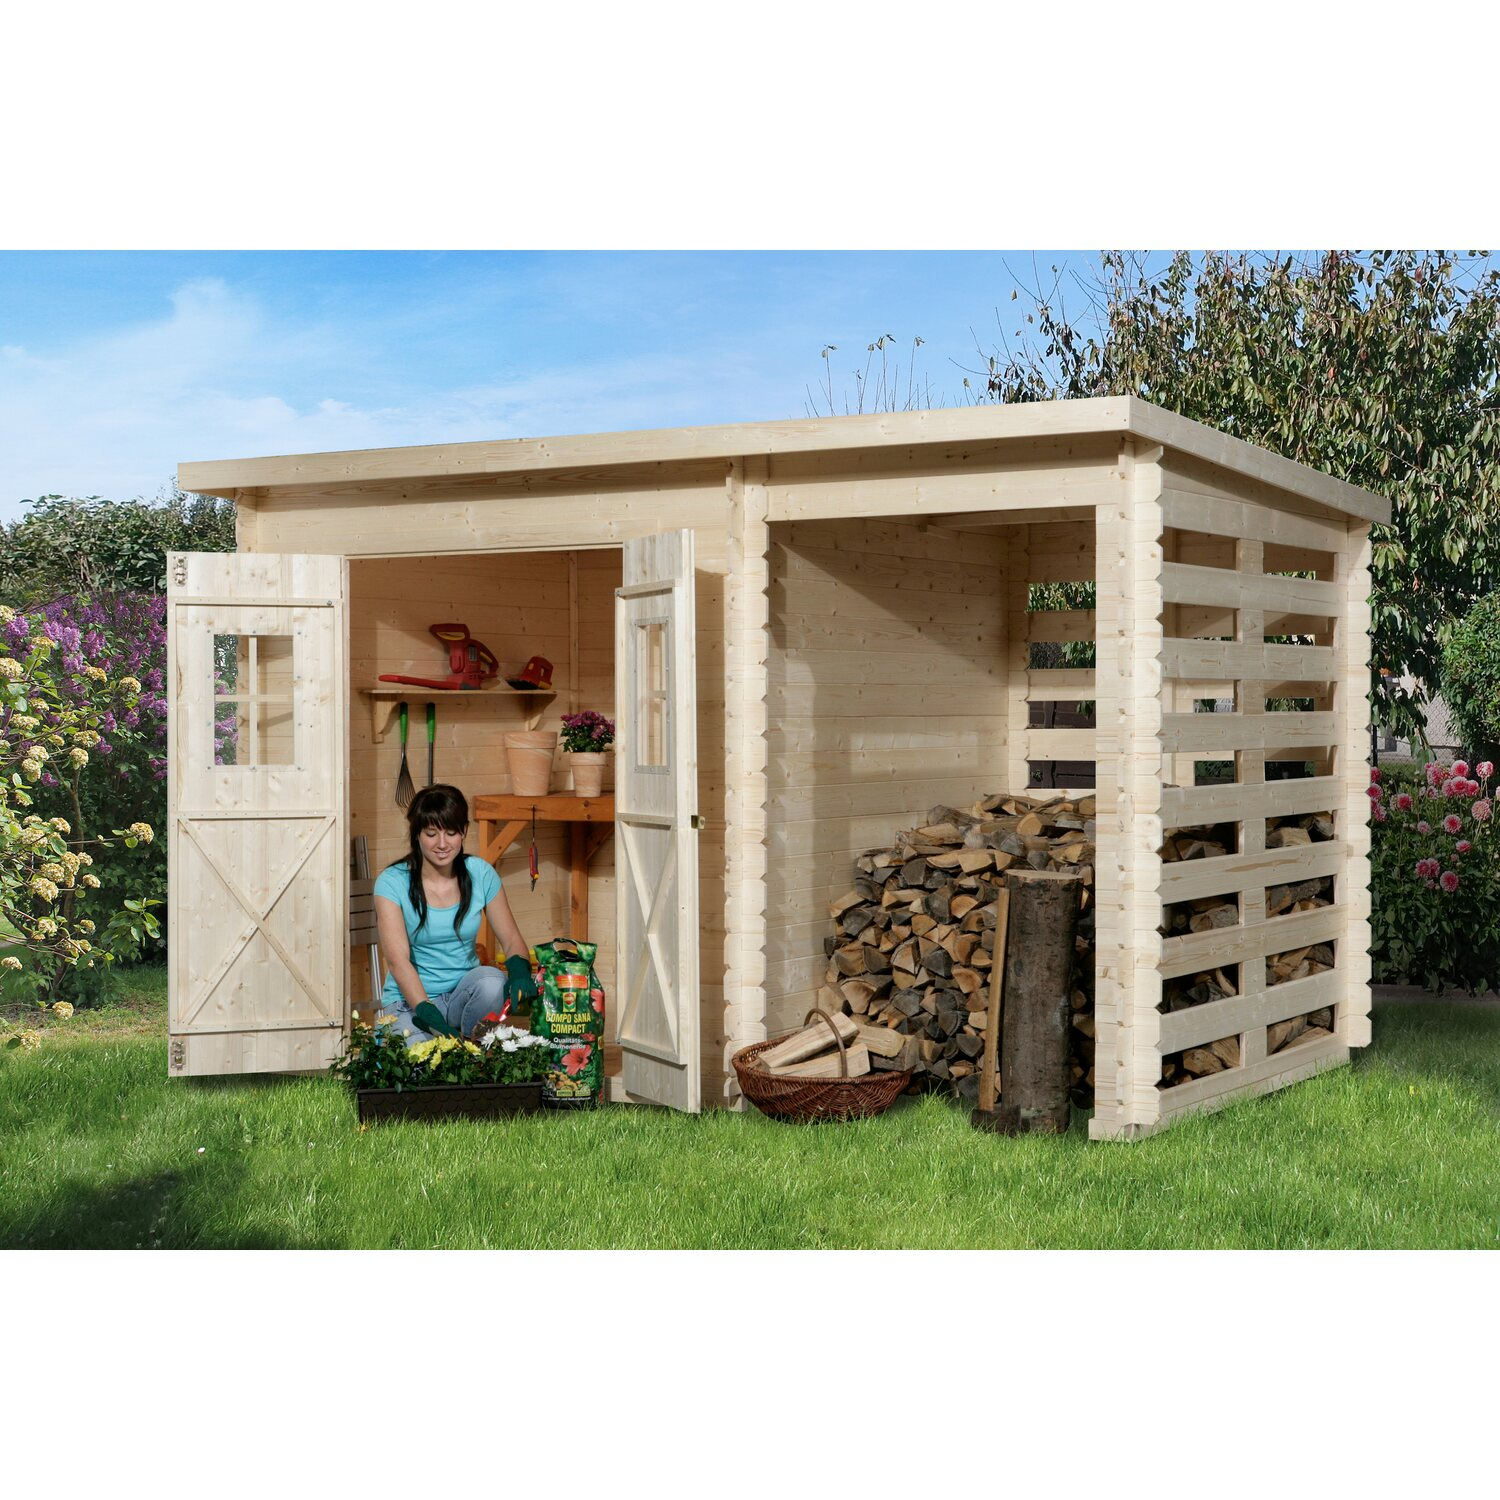 obi holz gartenhaus cortina b 330 cm x 200 cm mit anbau. Black Bedroom Furniture Sets. Home Design Ideas